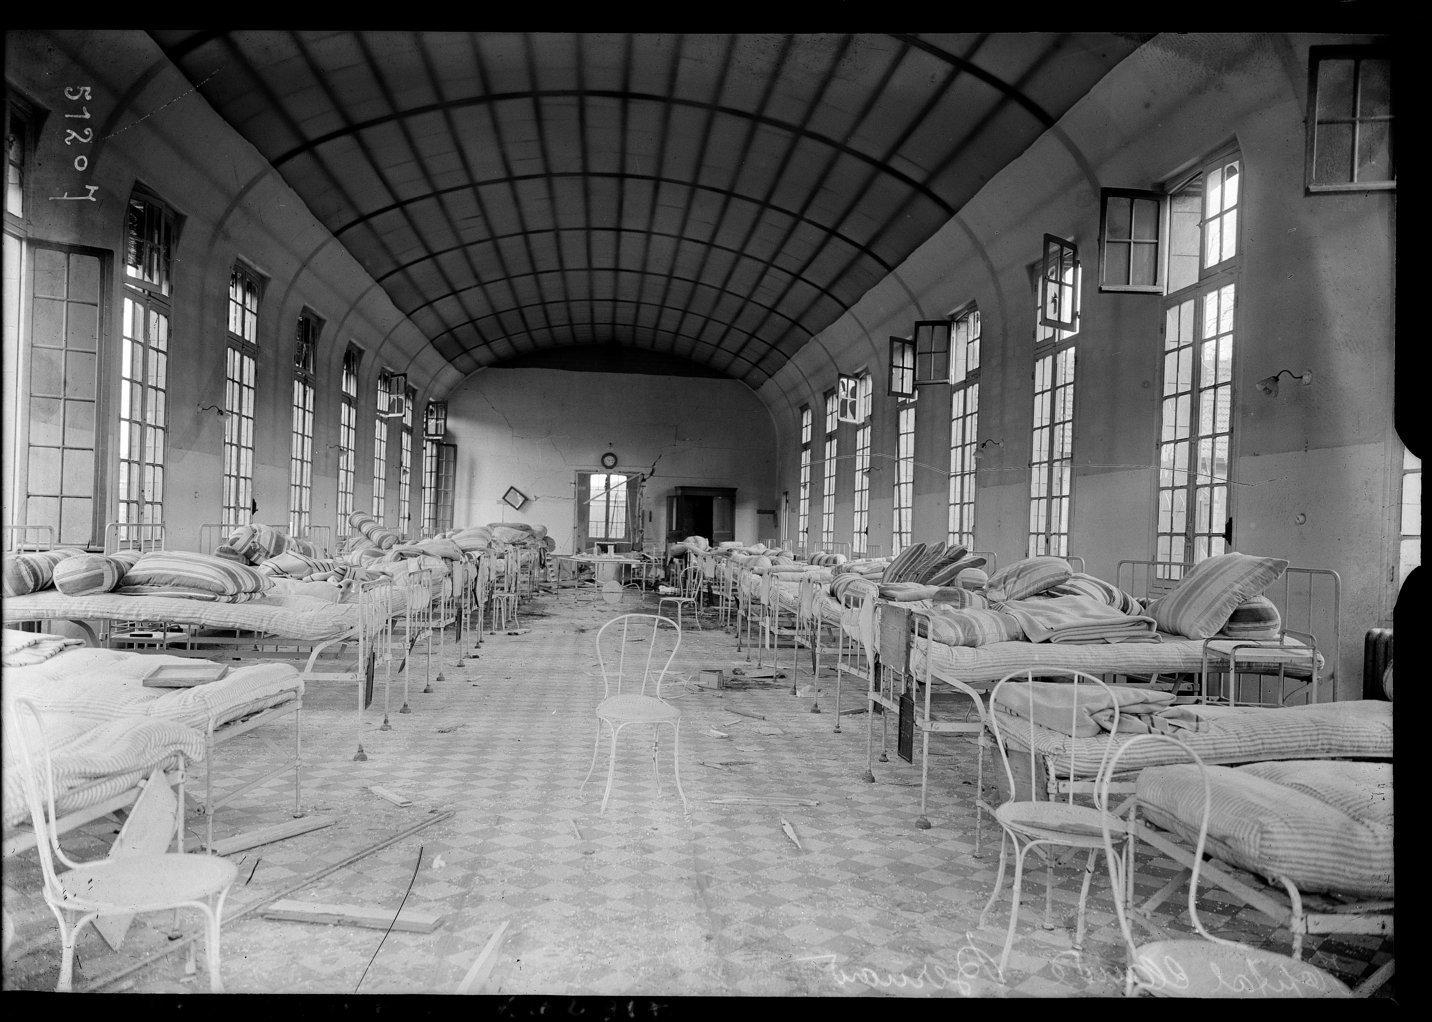 Hastily abandoned hospital in Paris, Agence Rol. Agence photographique 1918 Paris, French National Library - Bibliothèque Nationale de France, Public Domain Mark